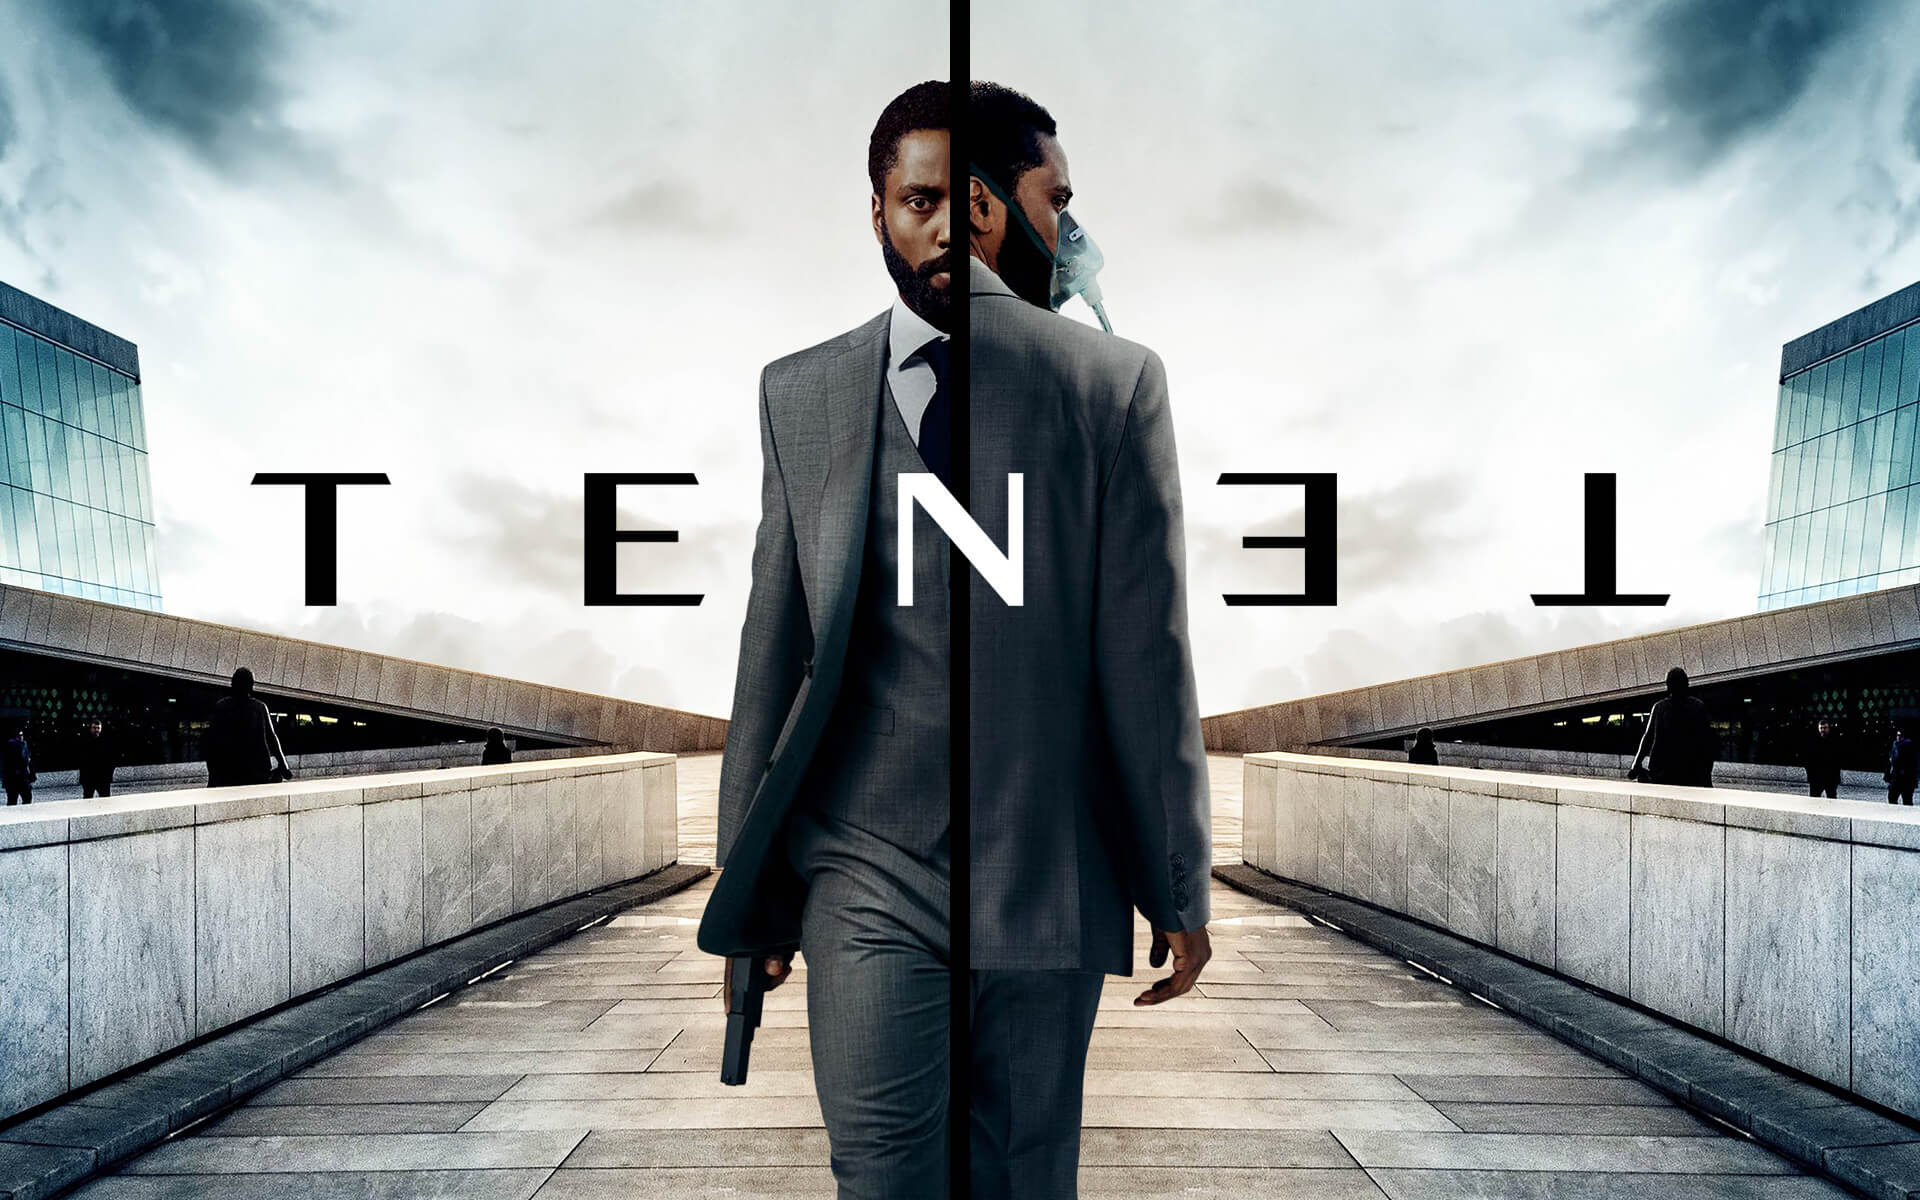 An Early Review: Tenet is confusing fun!